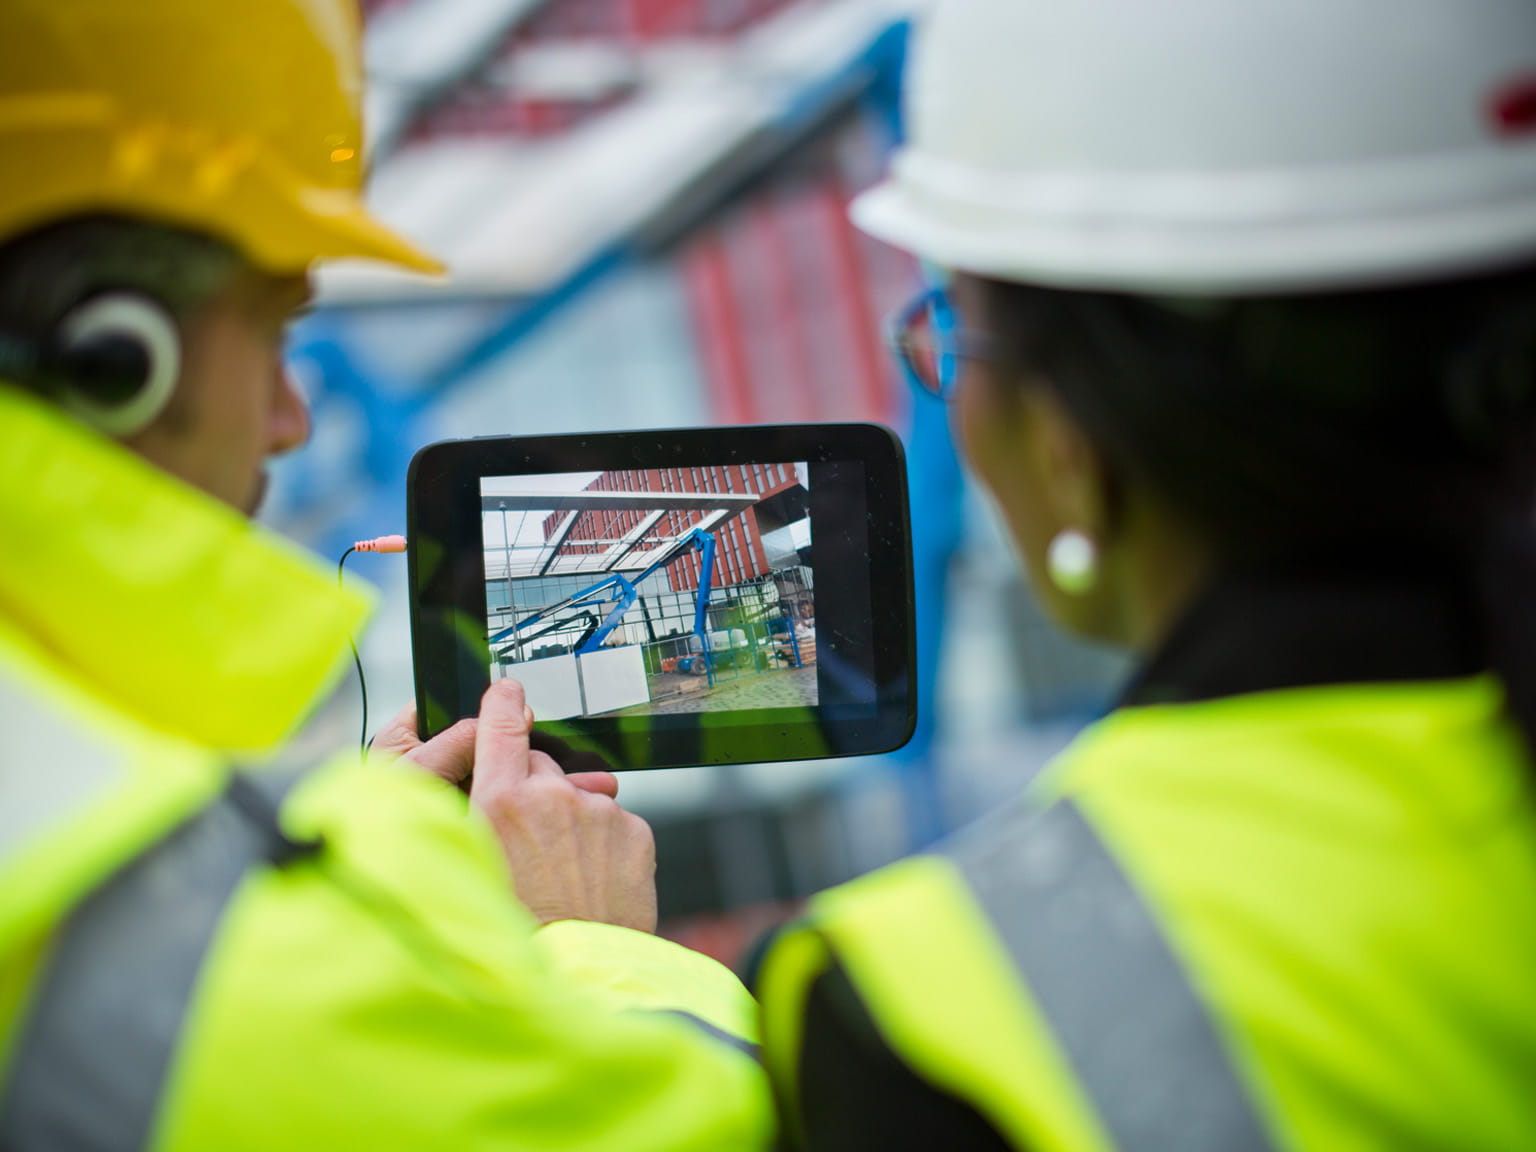 Two construction workers taking a photograph on site with a tablet device